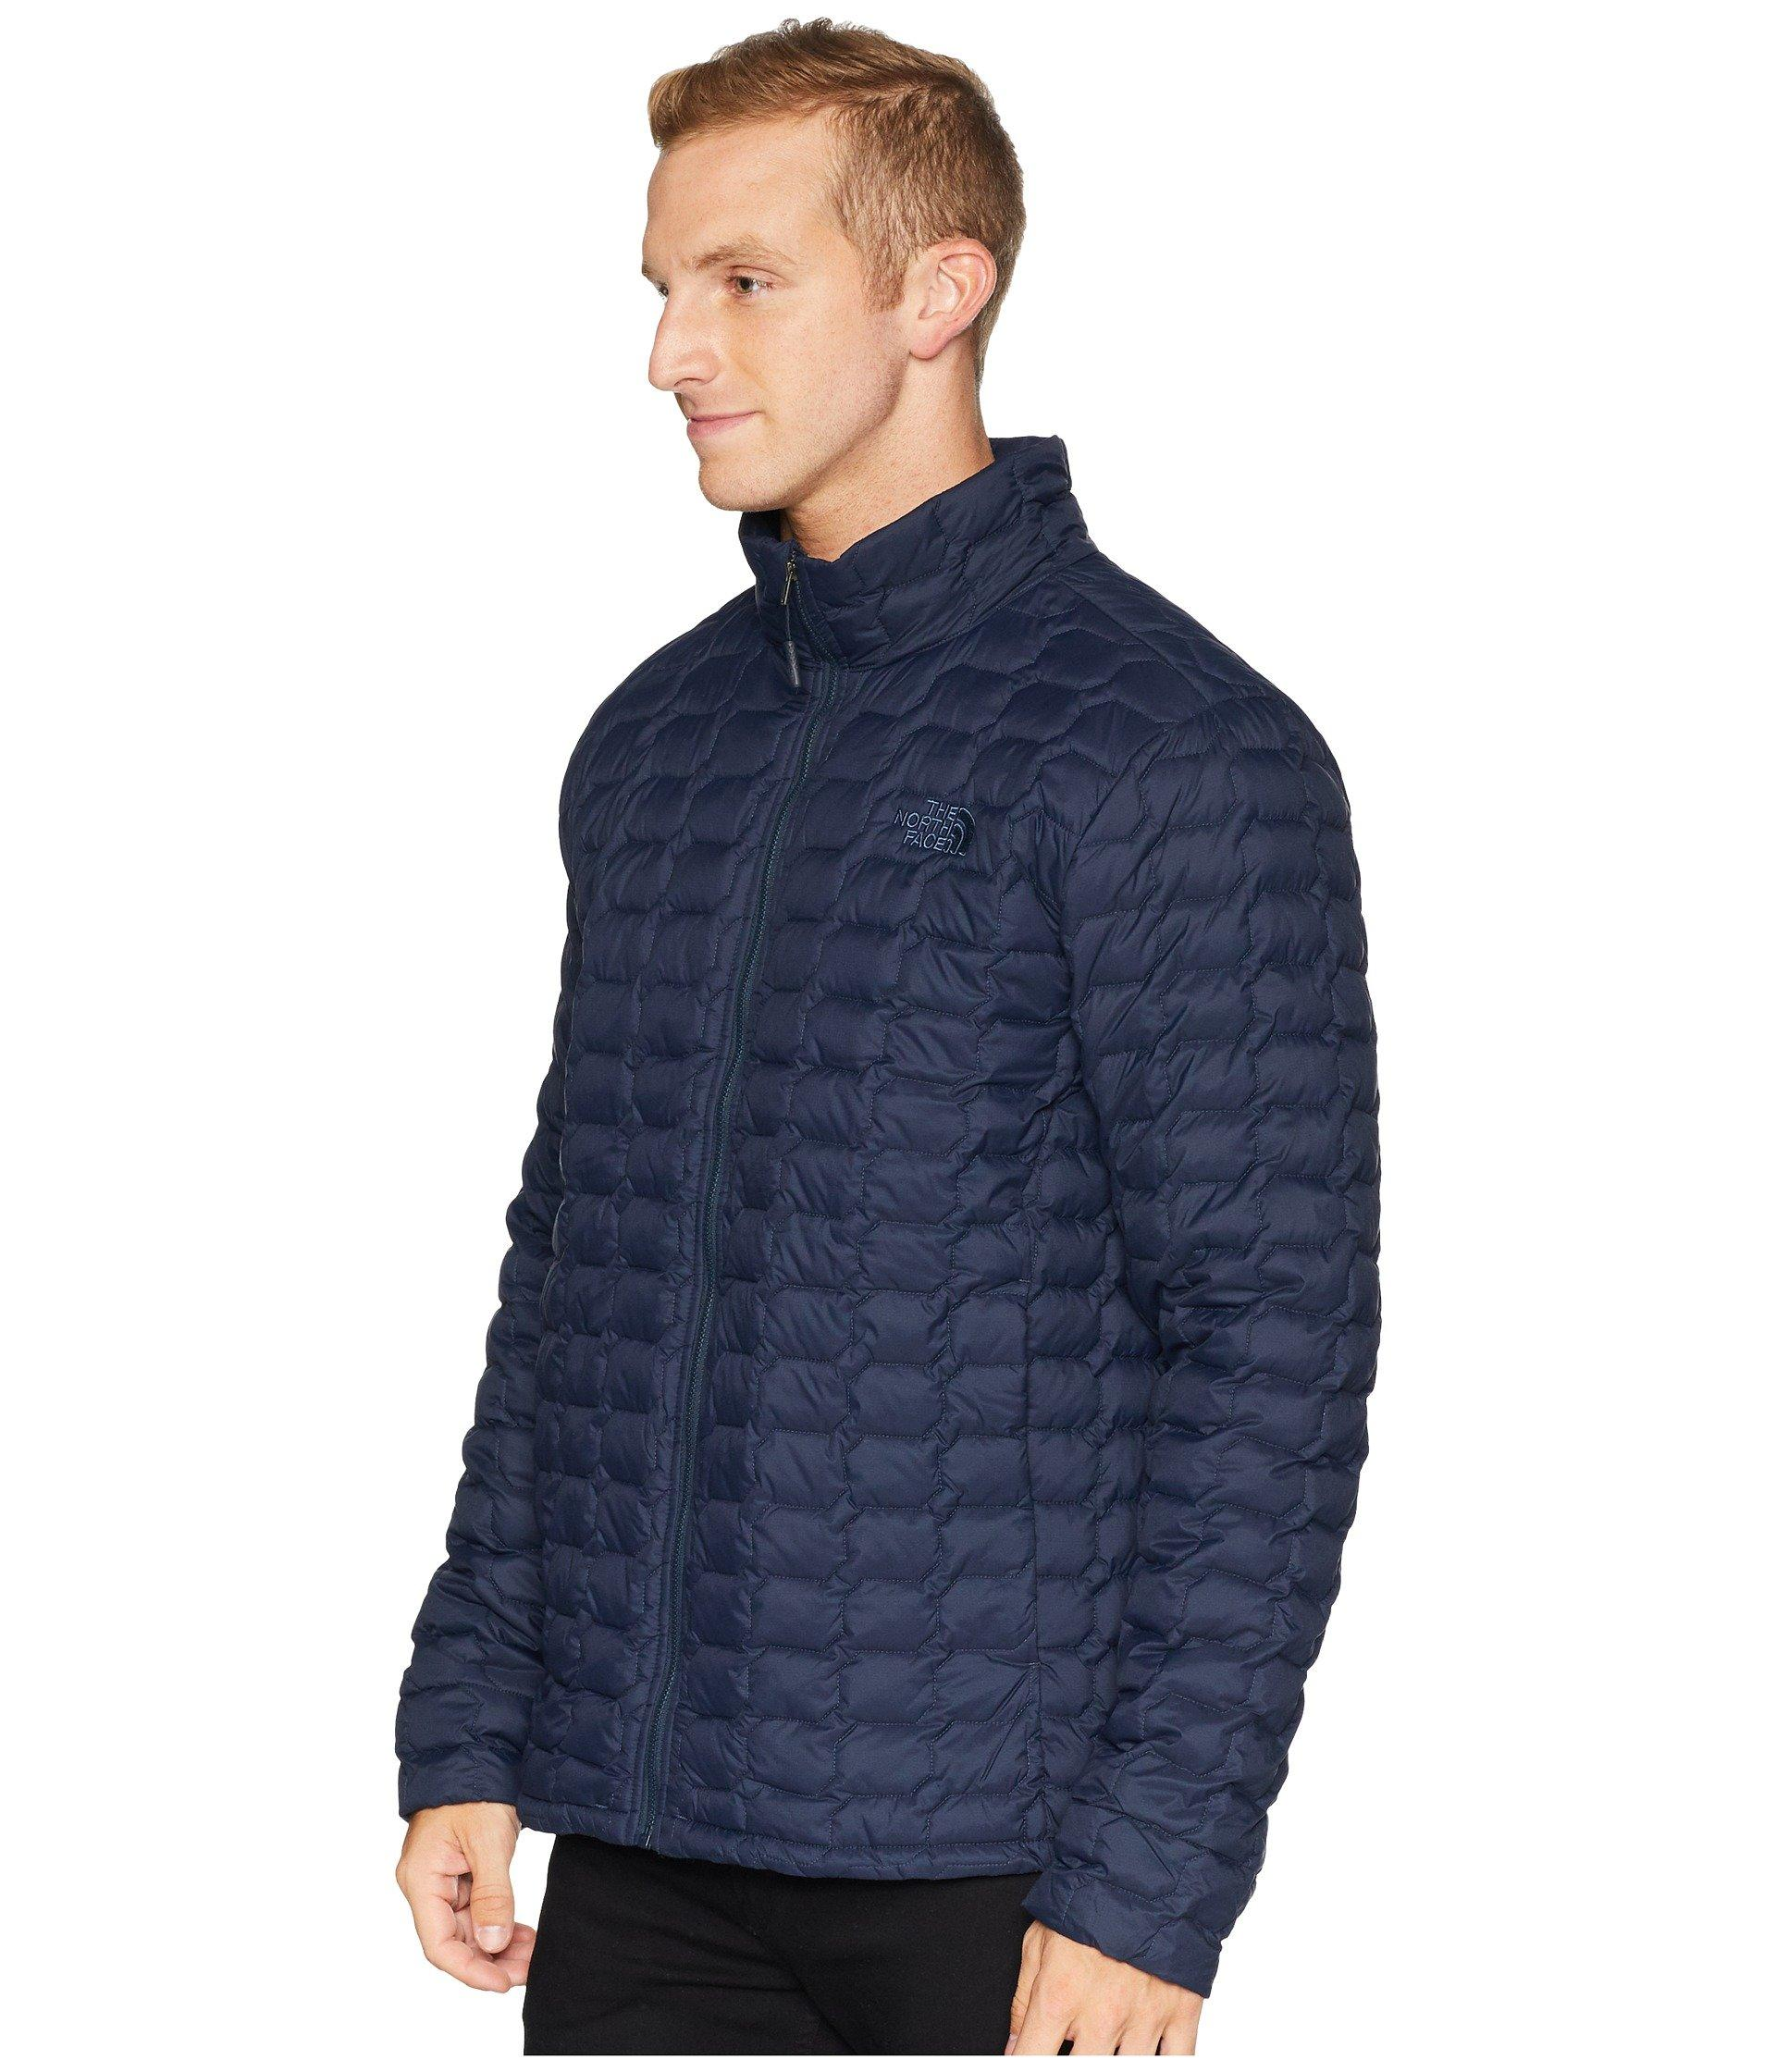 305e828ee3 Lyst - The North Face Thermoball Jacket (cargo Khaki) Men s Coat in Blue  for Men